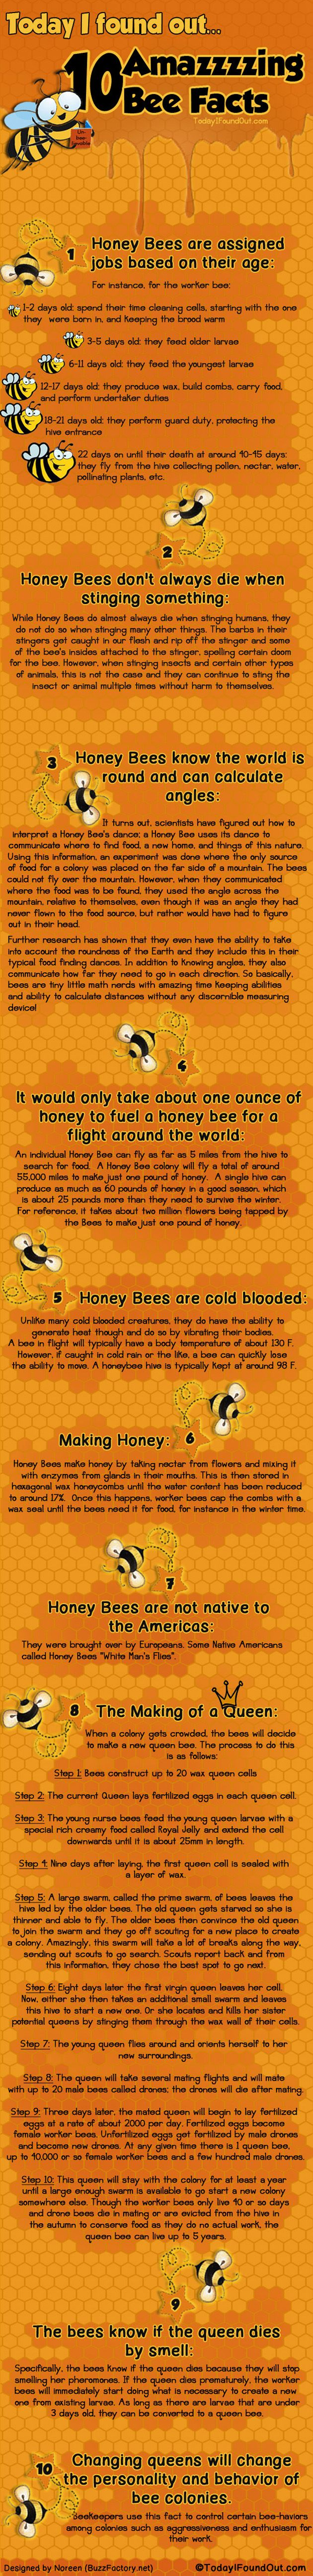 Top Ten Bee Facts – Infographic